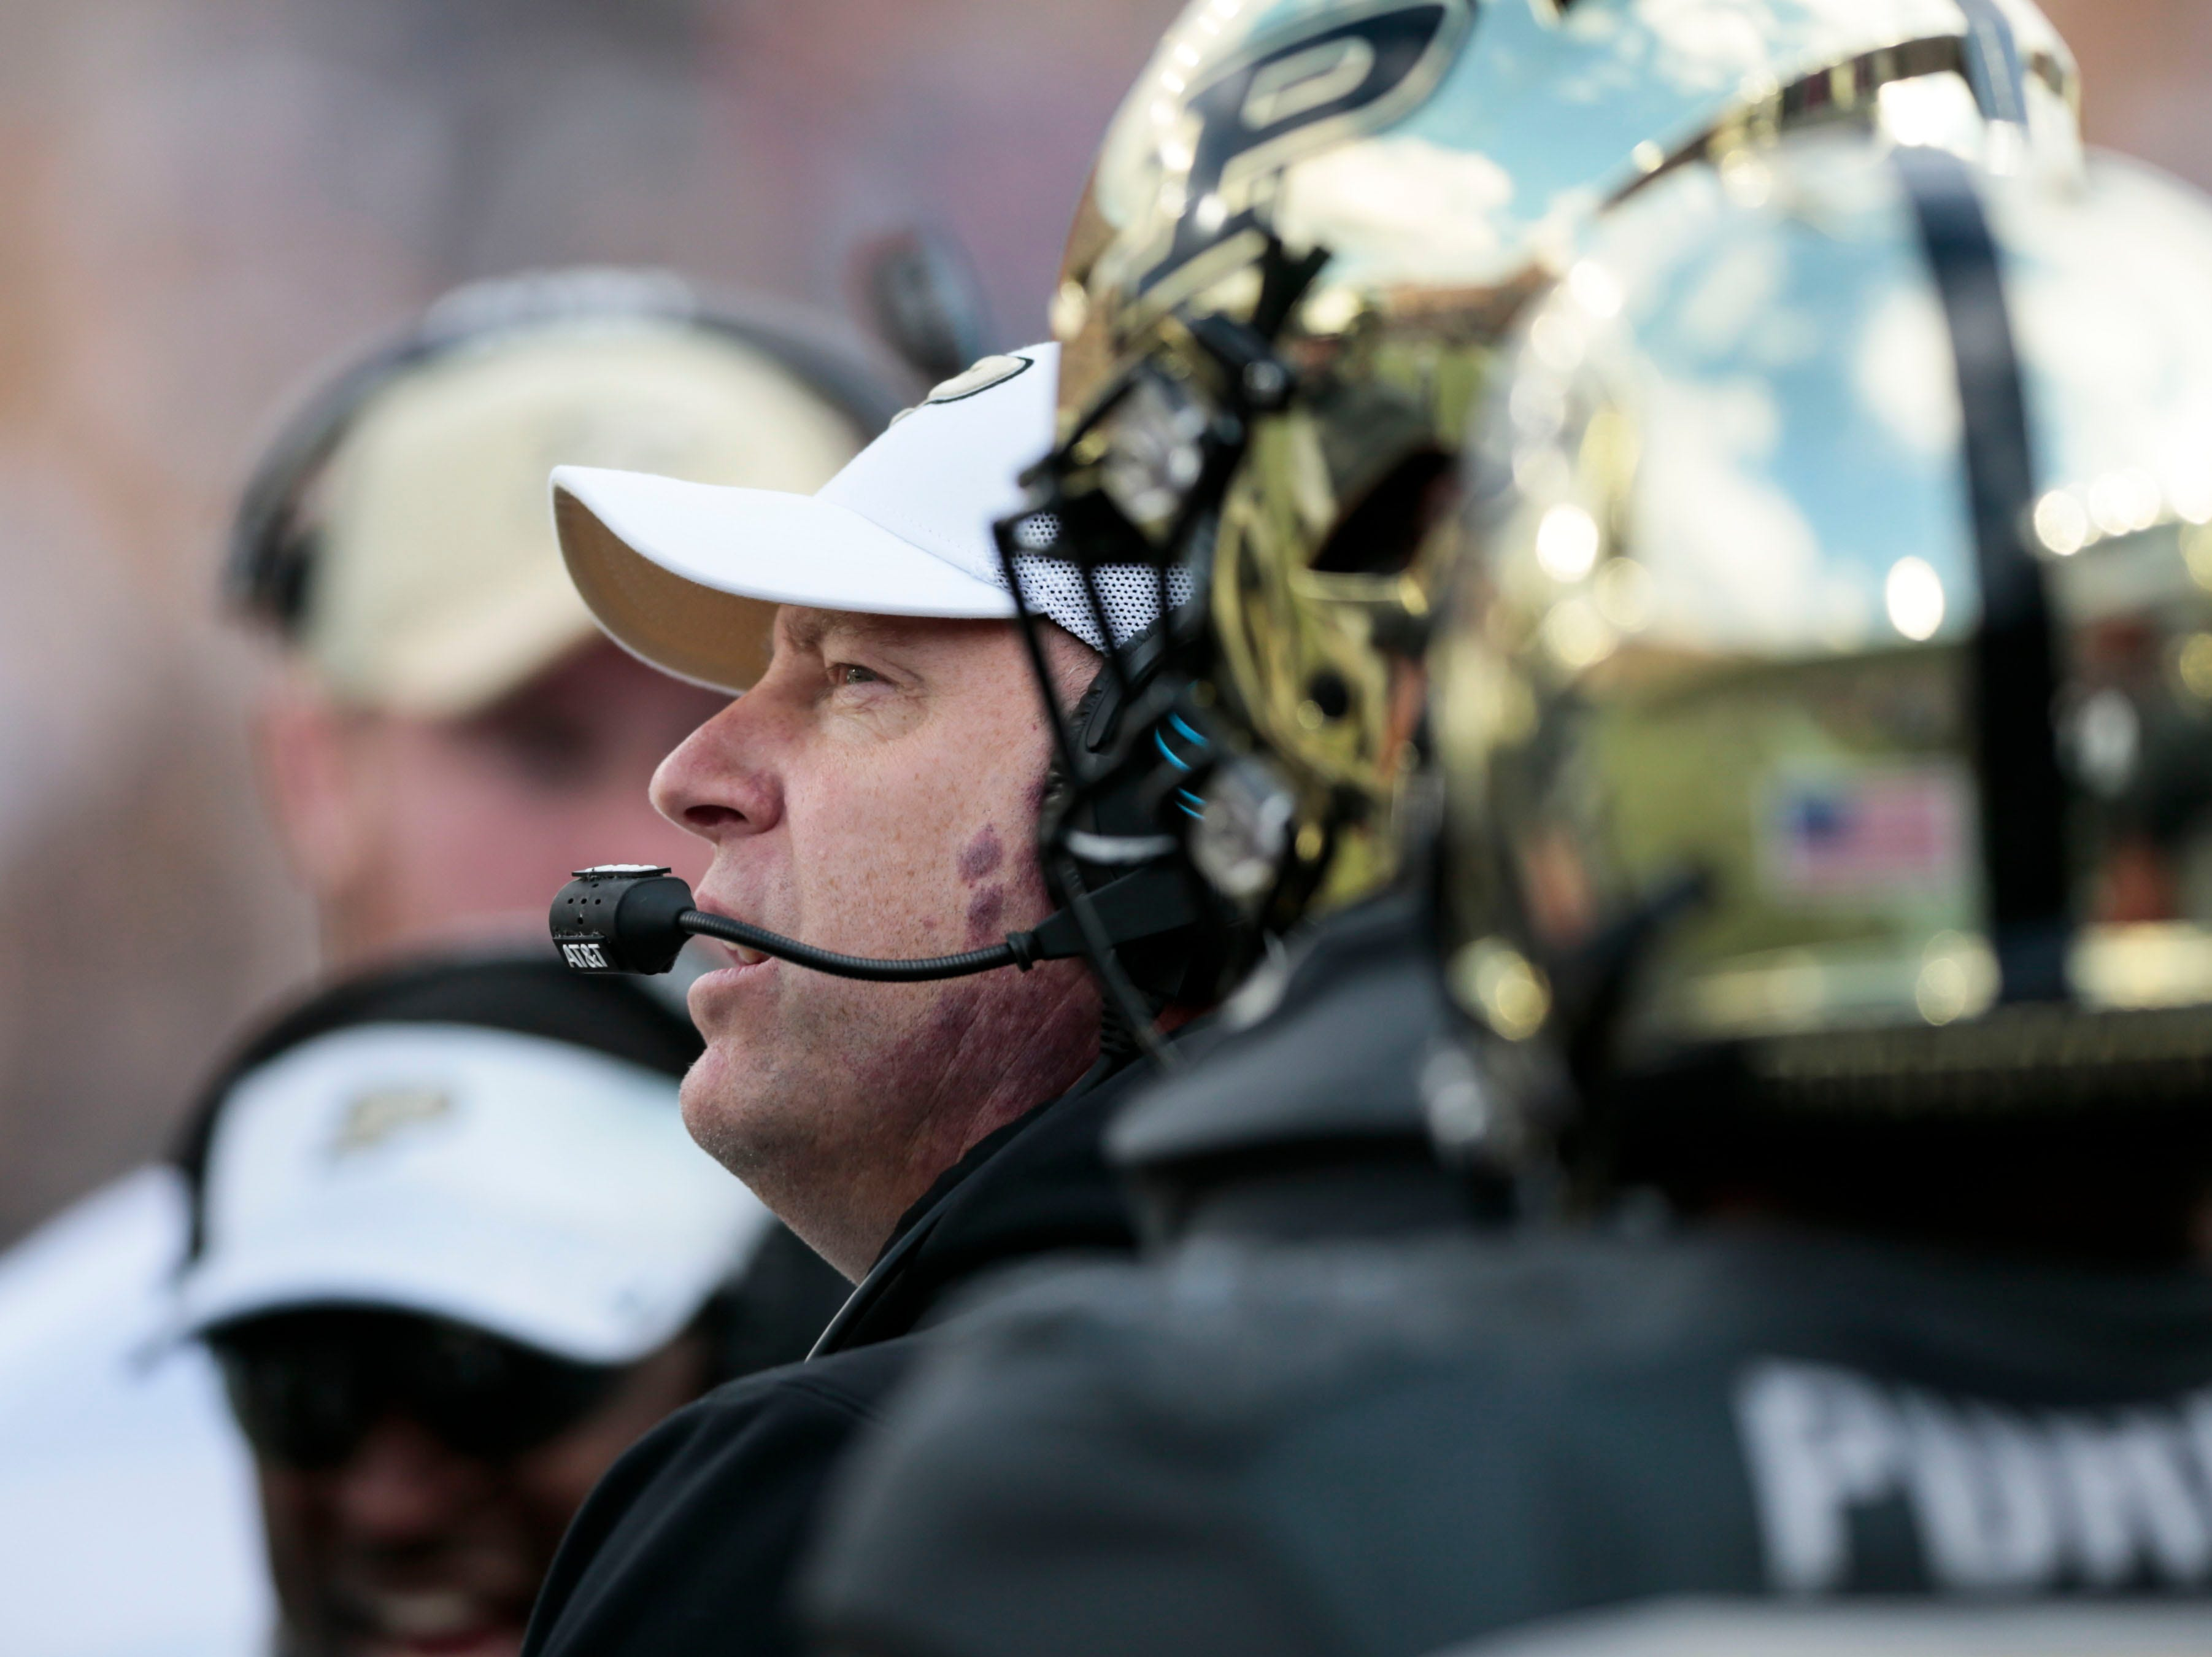 Purdue head coach Jeff Brohm talks to his team while playing against Iowa in the first half of an NCAA college football game in West Lafayette, Ind., Saturday, Nov. 3, 2018.